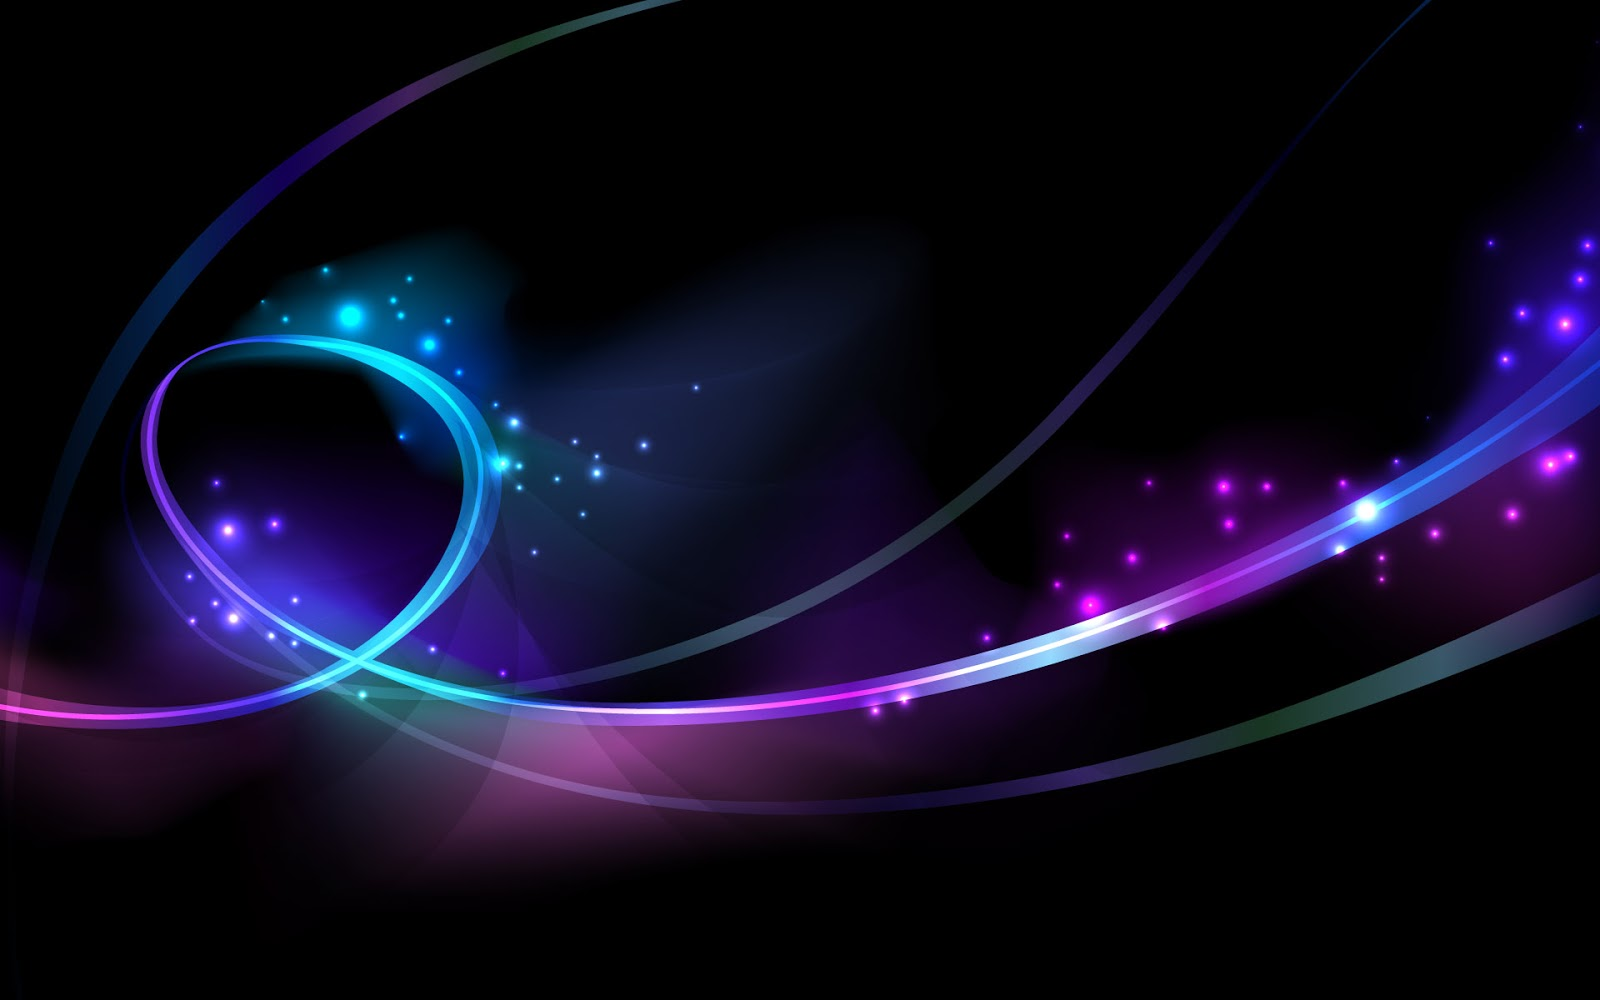 Cool Wallpapers HD HD Wallpapers Backgrounds Photos 1600x1000